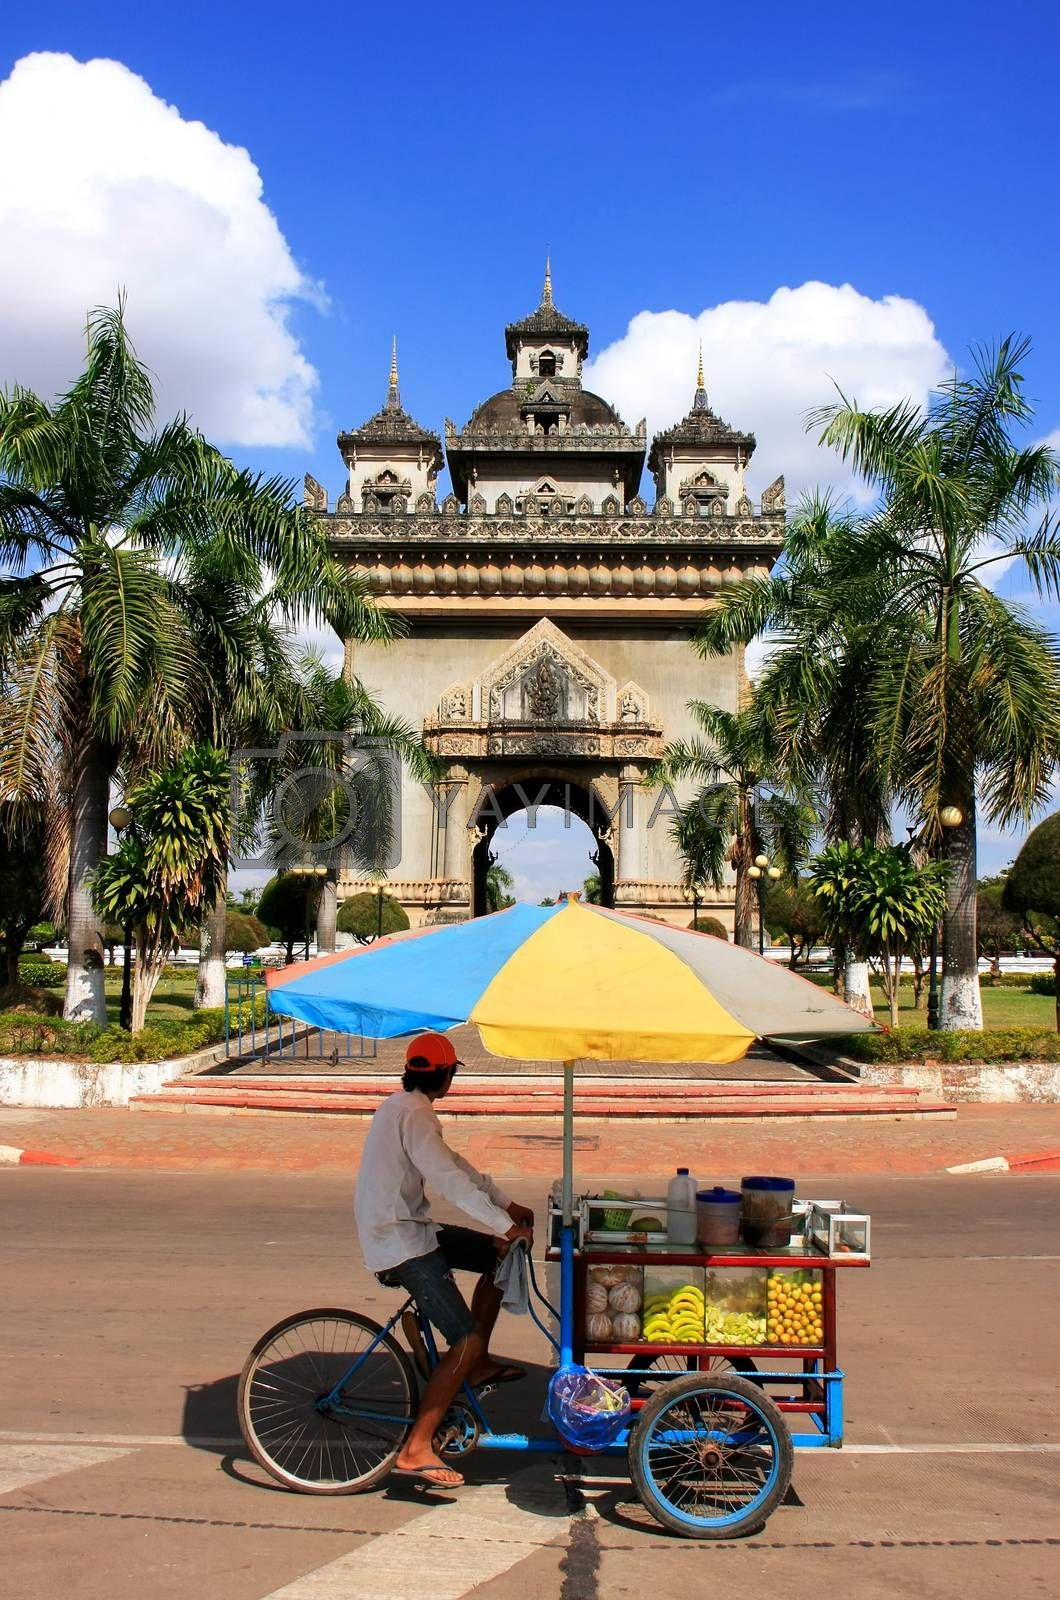 Royalty free image of Street food seller on a bicycle in front of Victory Gate Patuxai by donya_nedomam